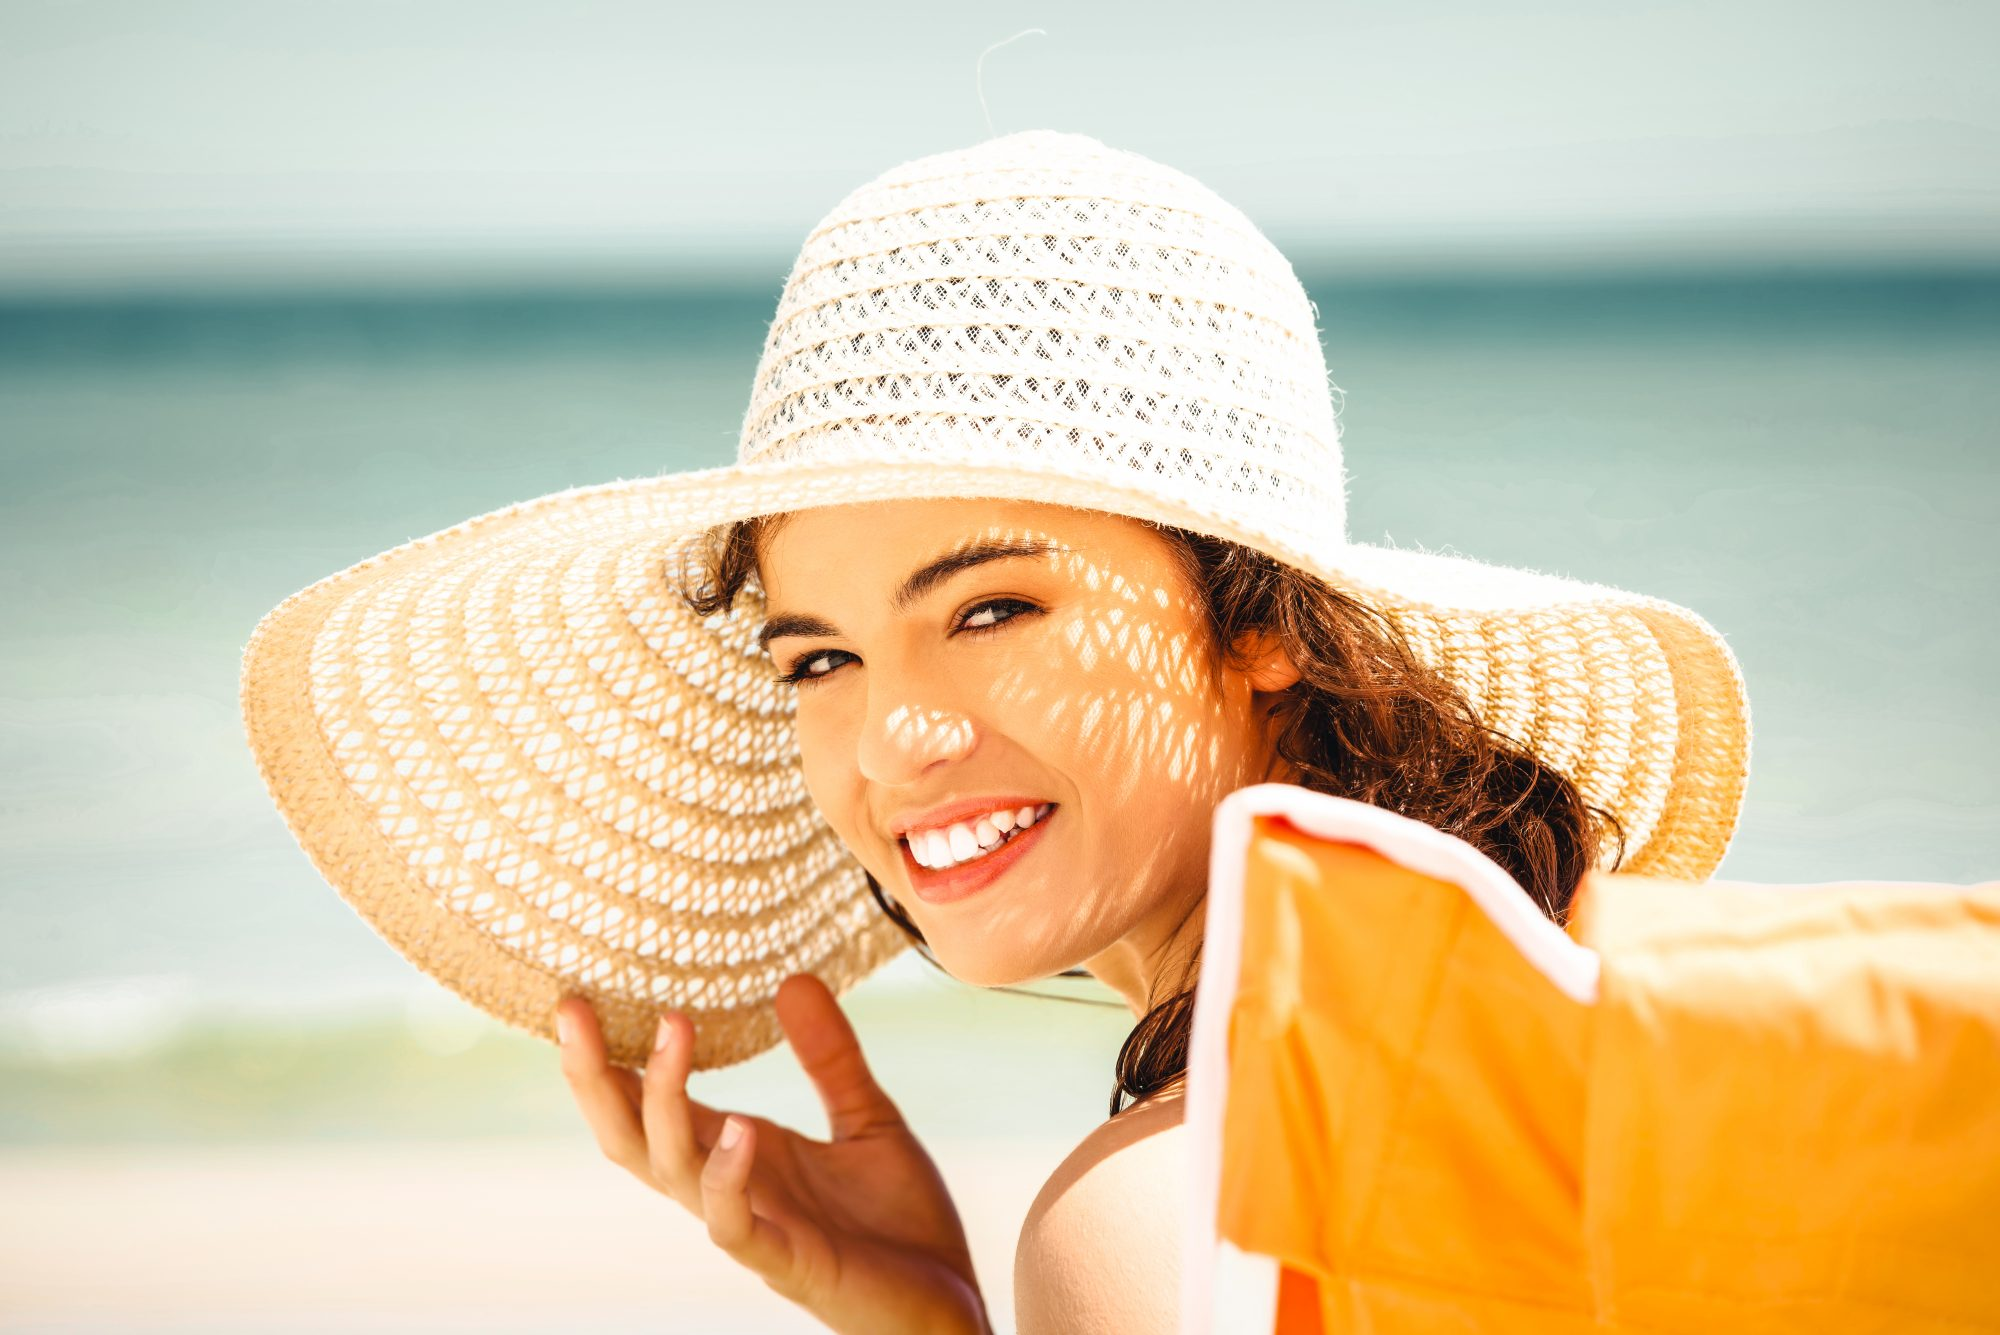 Woman in Sunhat Smiling on the Beach